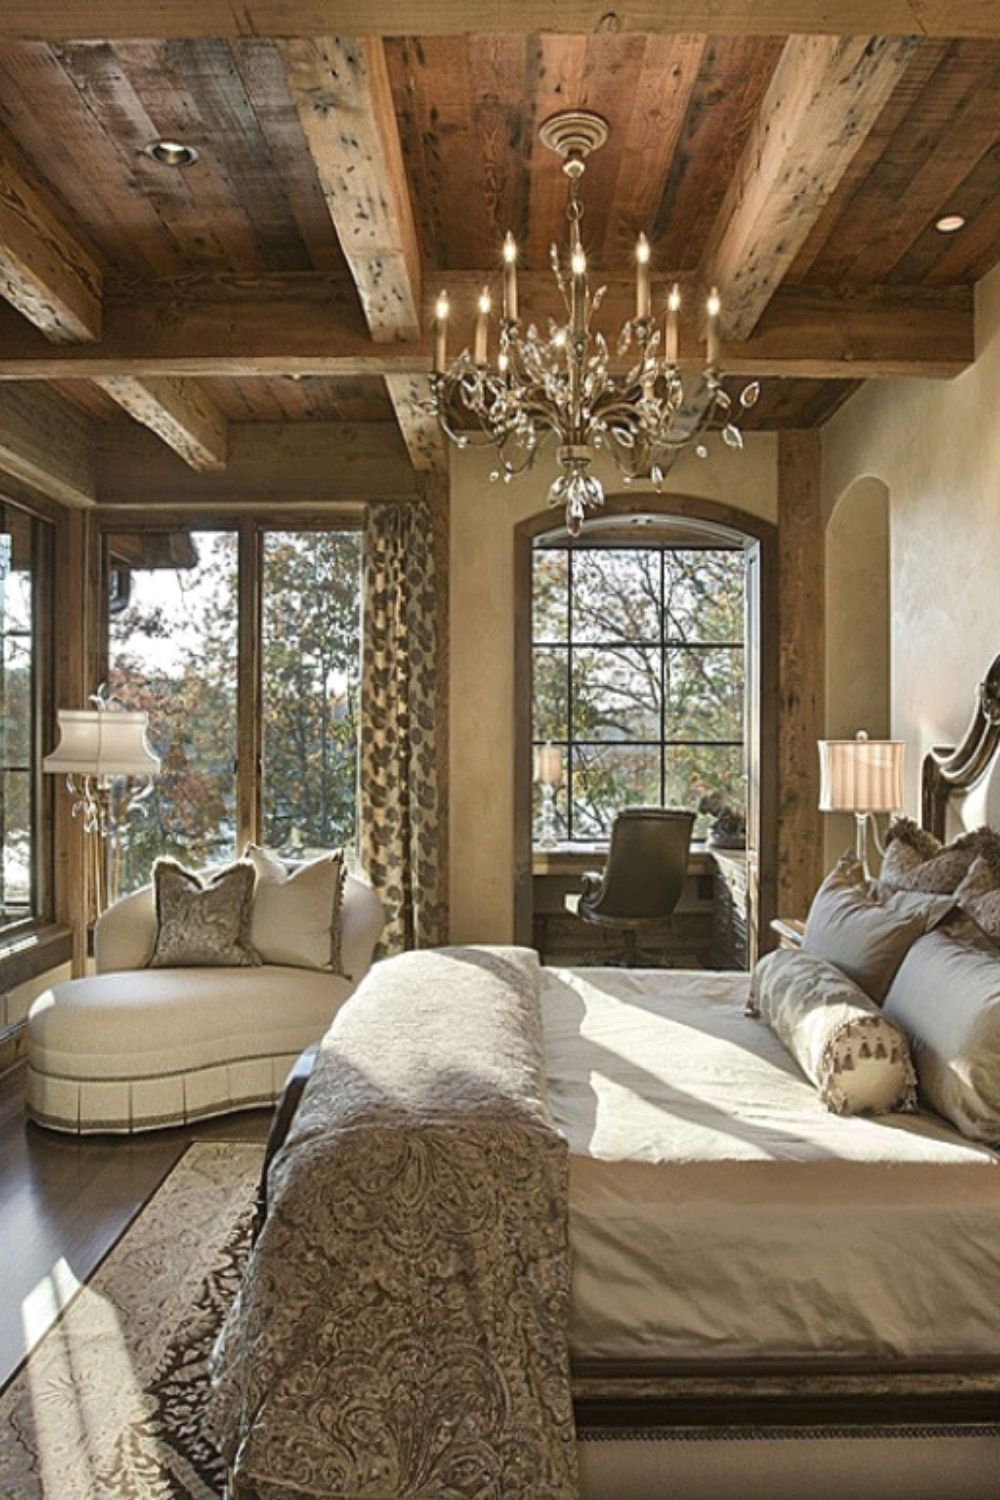 Luxury Master Bedroom Colors Natural About House Castle 600 Bedroomdecorideas Bedroomdec Country Master Bedroom Luxury Bedroom Master Rustic Master Bedroom